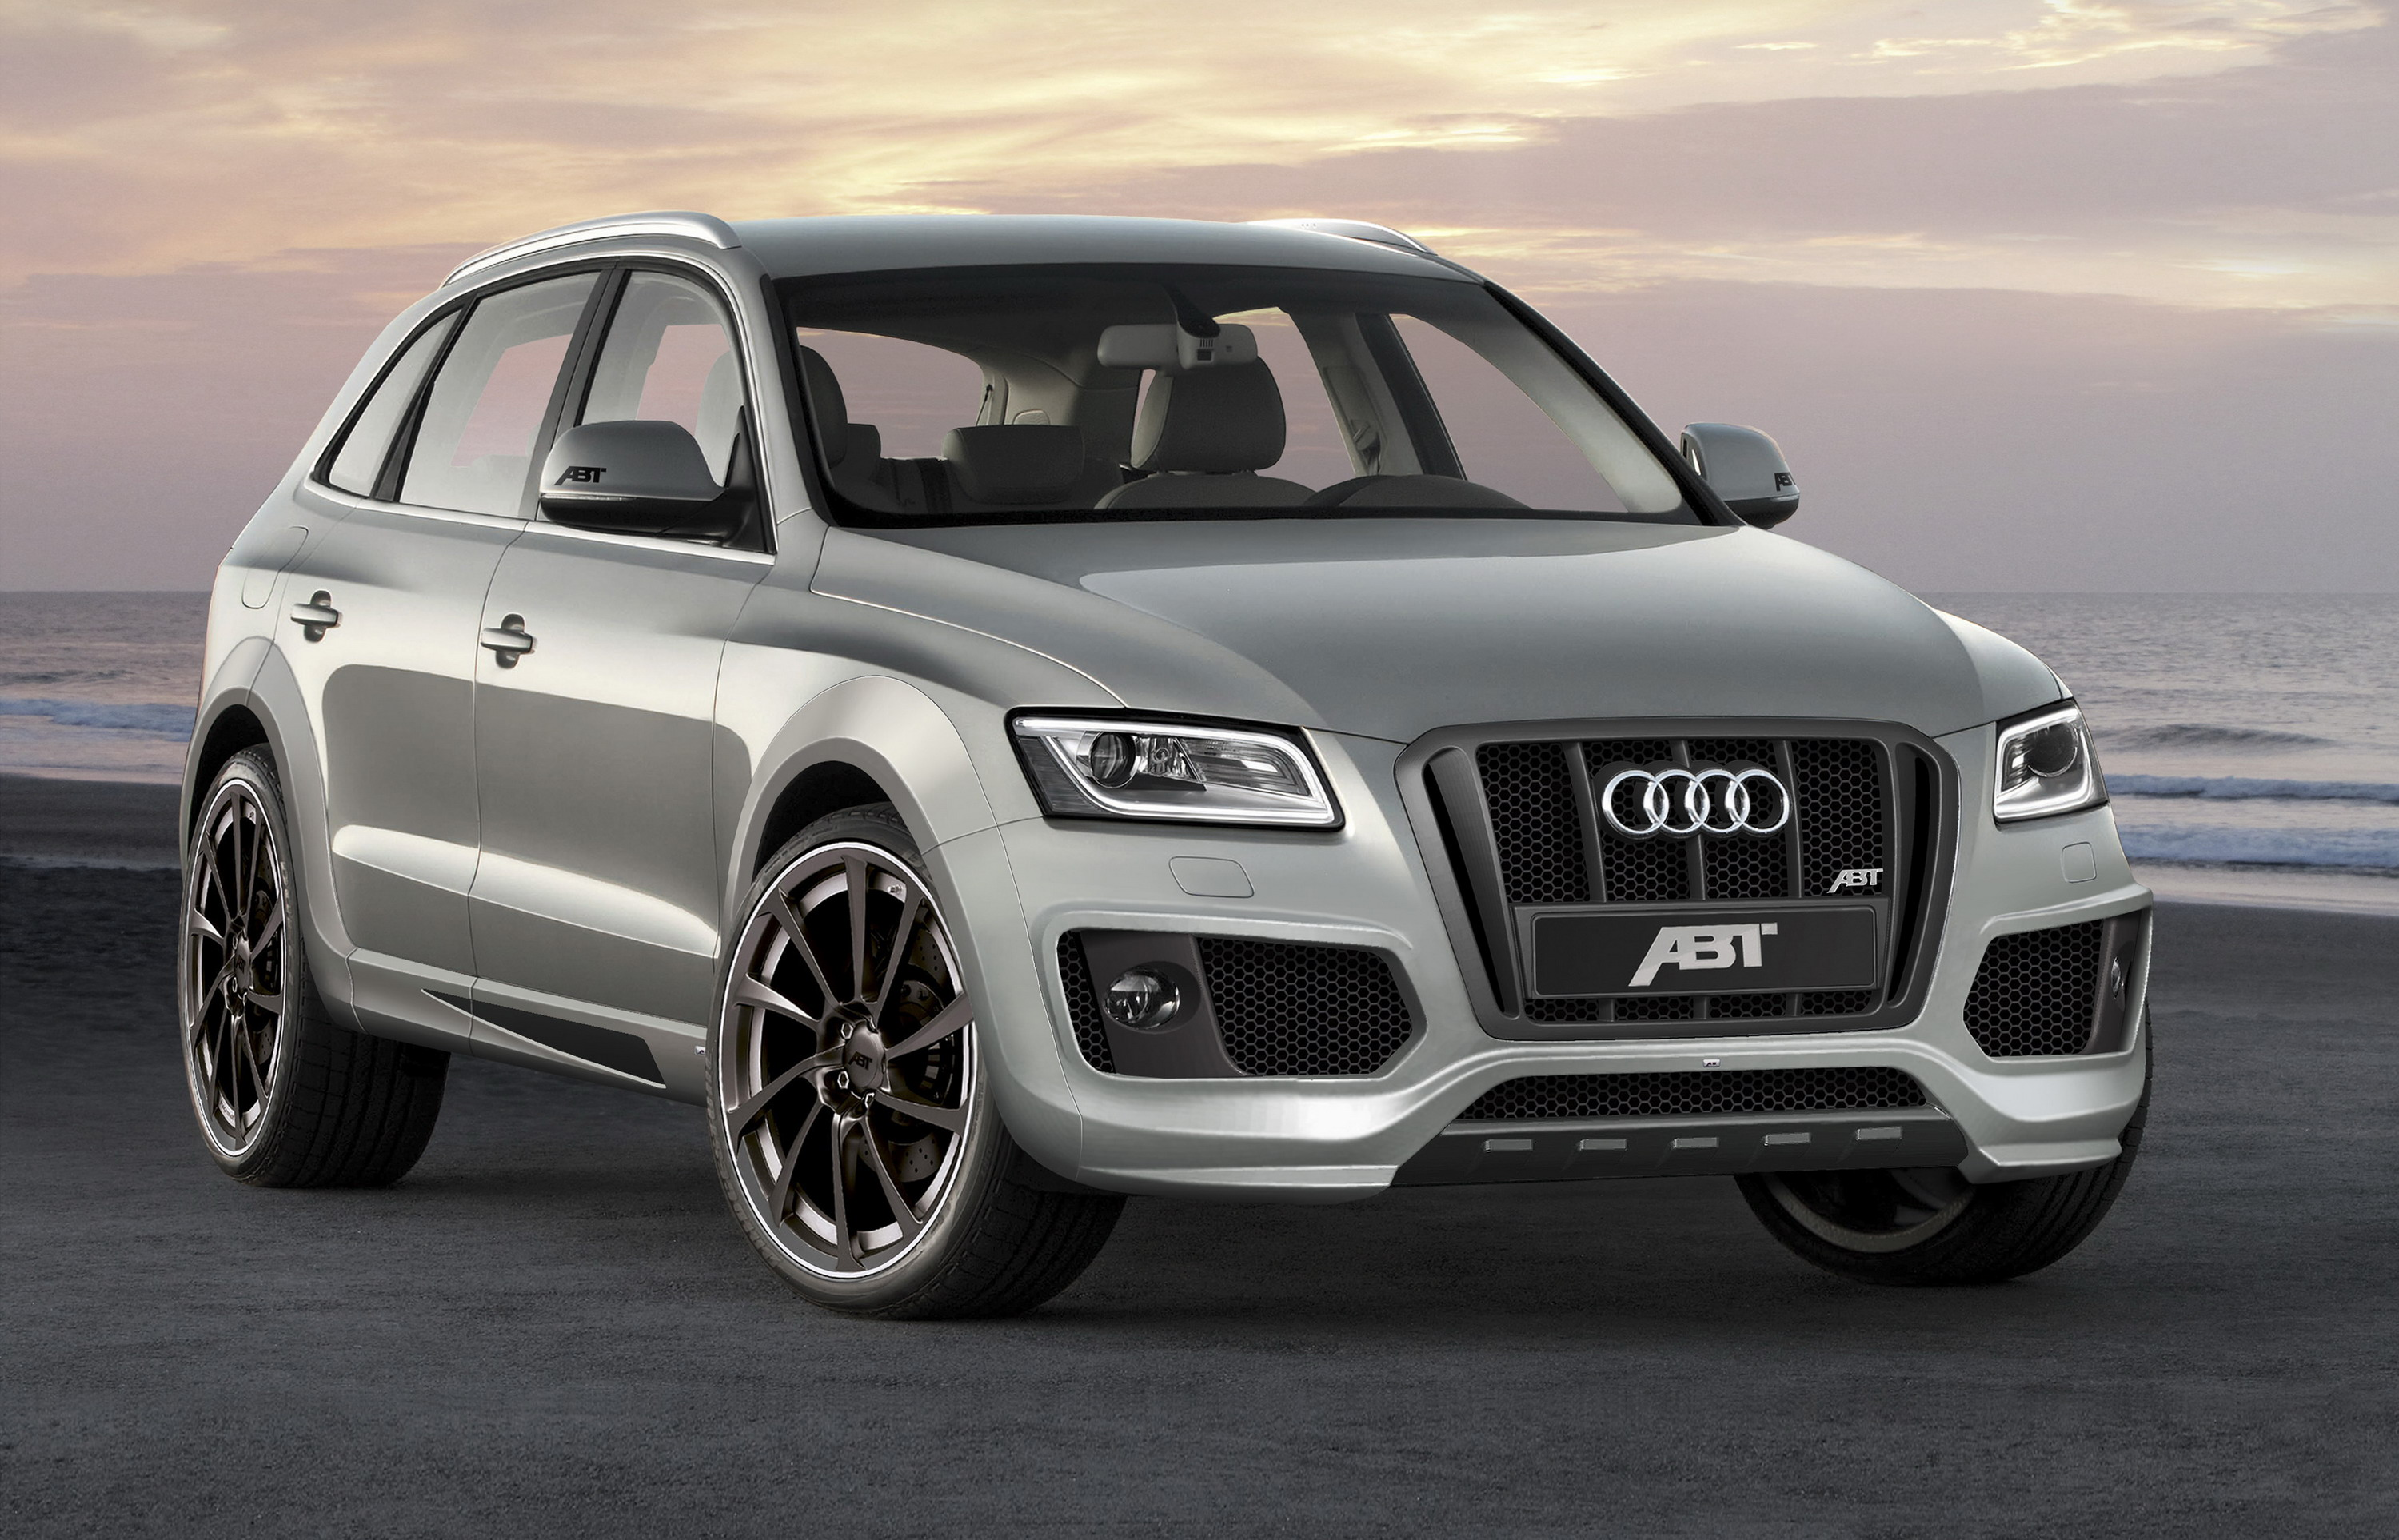 sportsline by audi speed spor top abt cars price